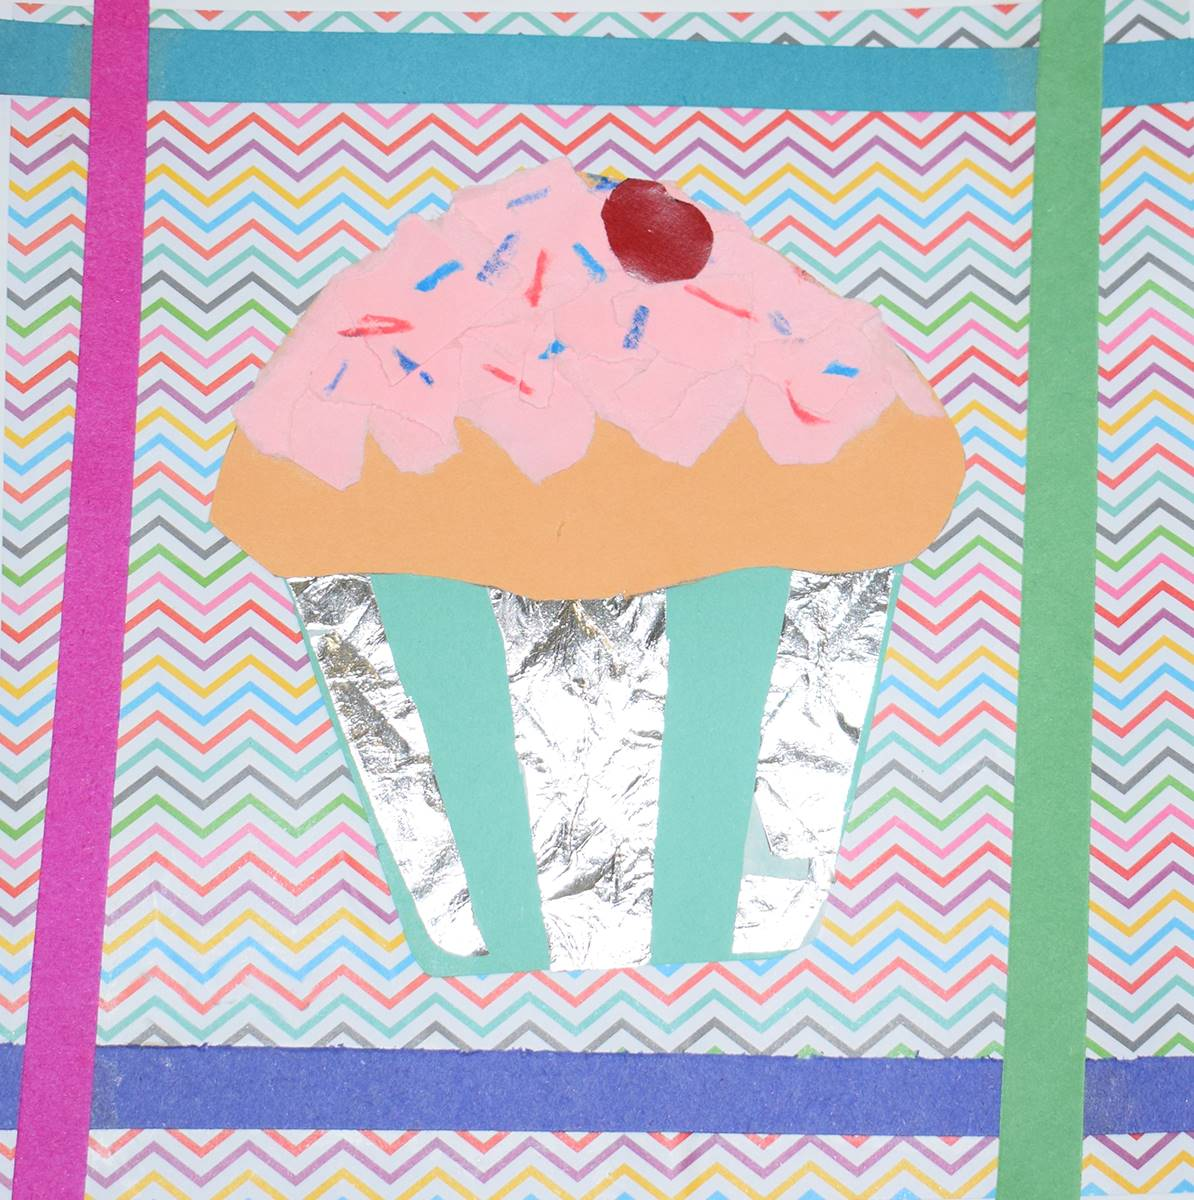 Mixed-media artwork of a strawberry cupcake with sprinkles and a red cherry on top in a teal-blue an